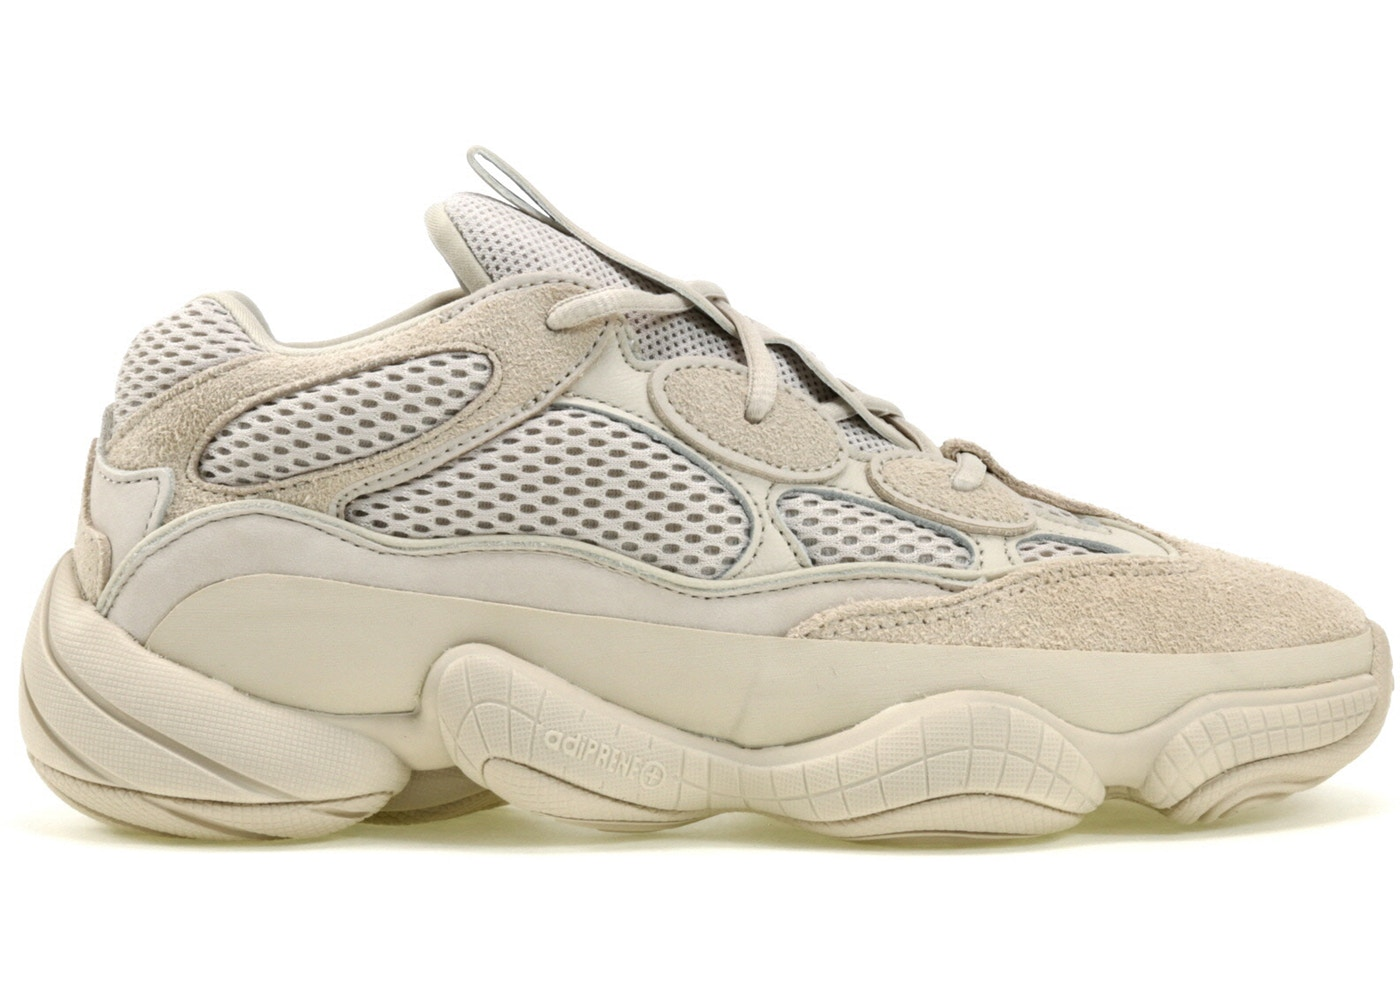 48a002d93 SNEAKER REVIEW  YEEZY 500 — HECTOR CULTURE